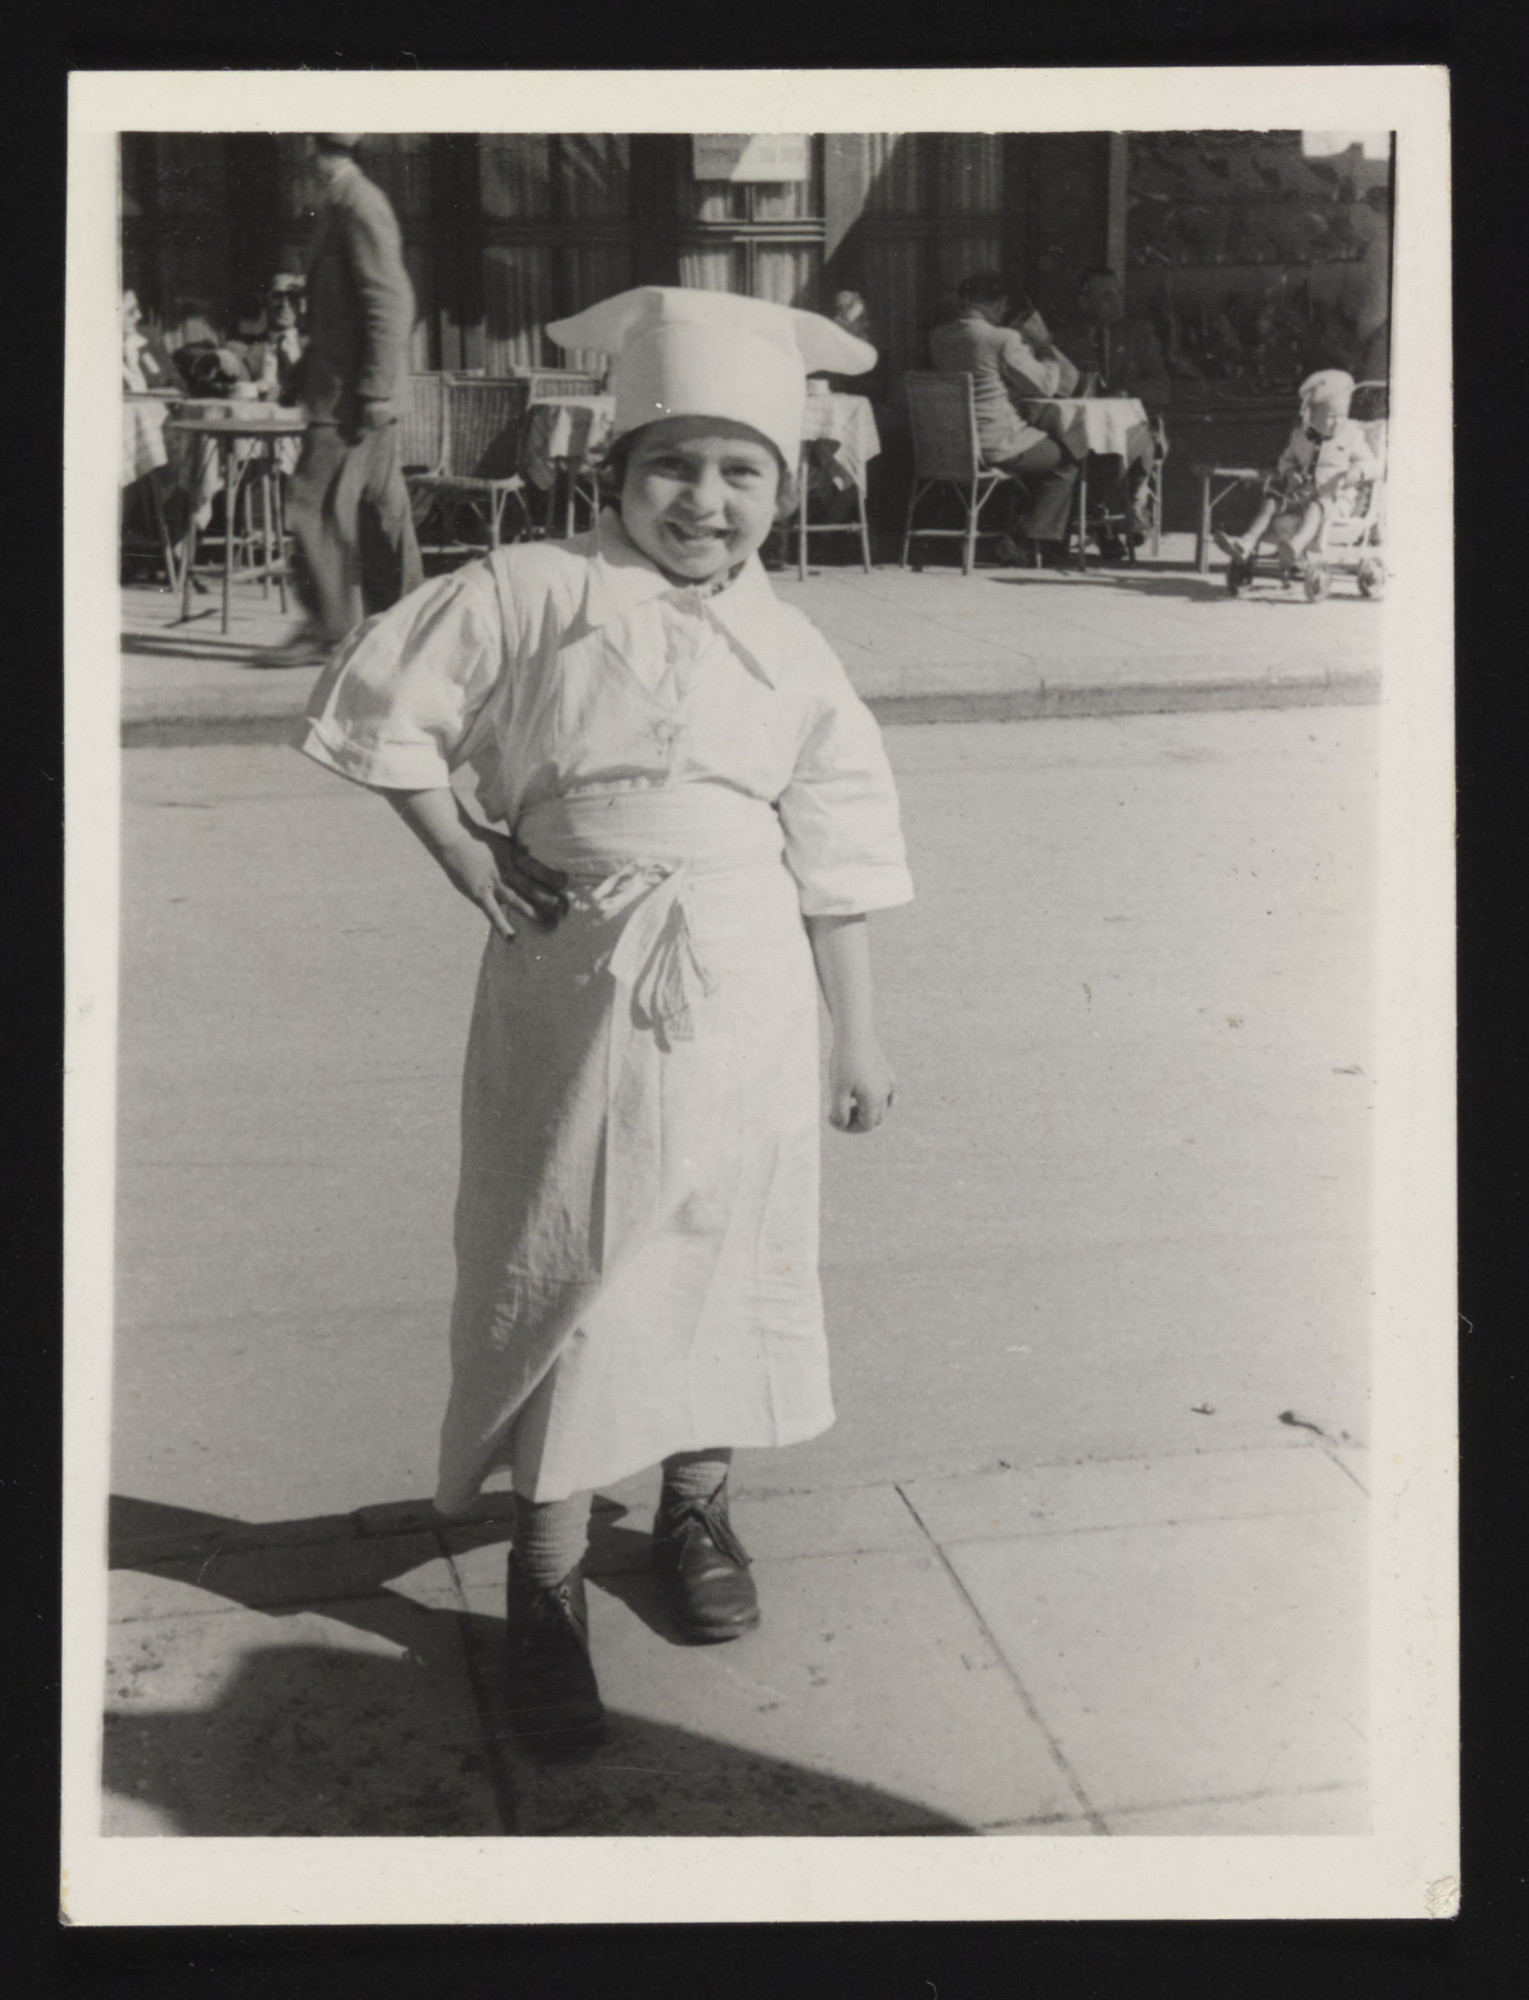 Edna Weissman (Tamar's cousin) poses on the street  in Yugoslavia wearing a chef's costume.